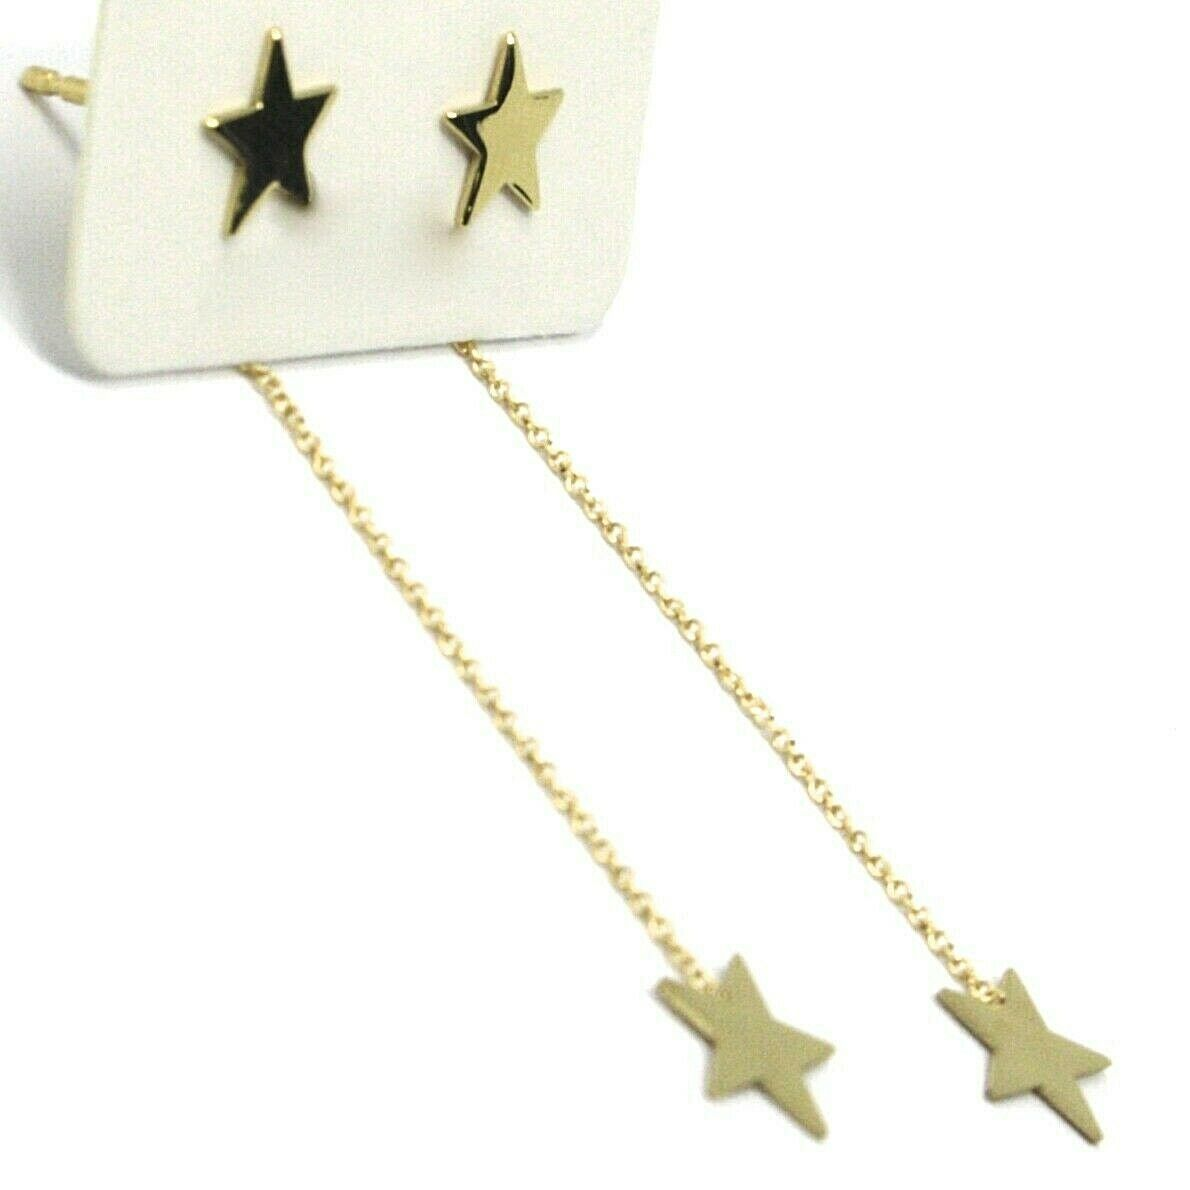 18K YELLOW GOLD PENDANT EARRINGS FLAT DOUBLE STAR, SHINY, SMOOTH, ROLO CHAIN